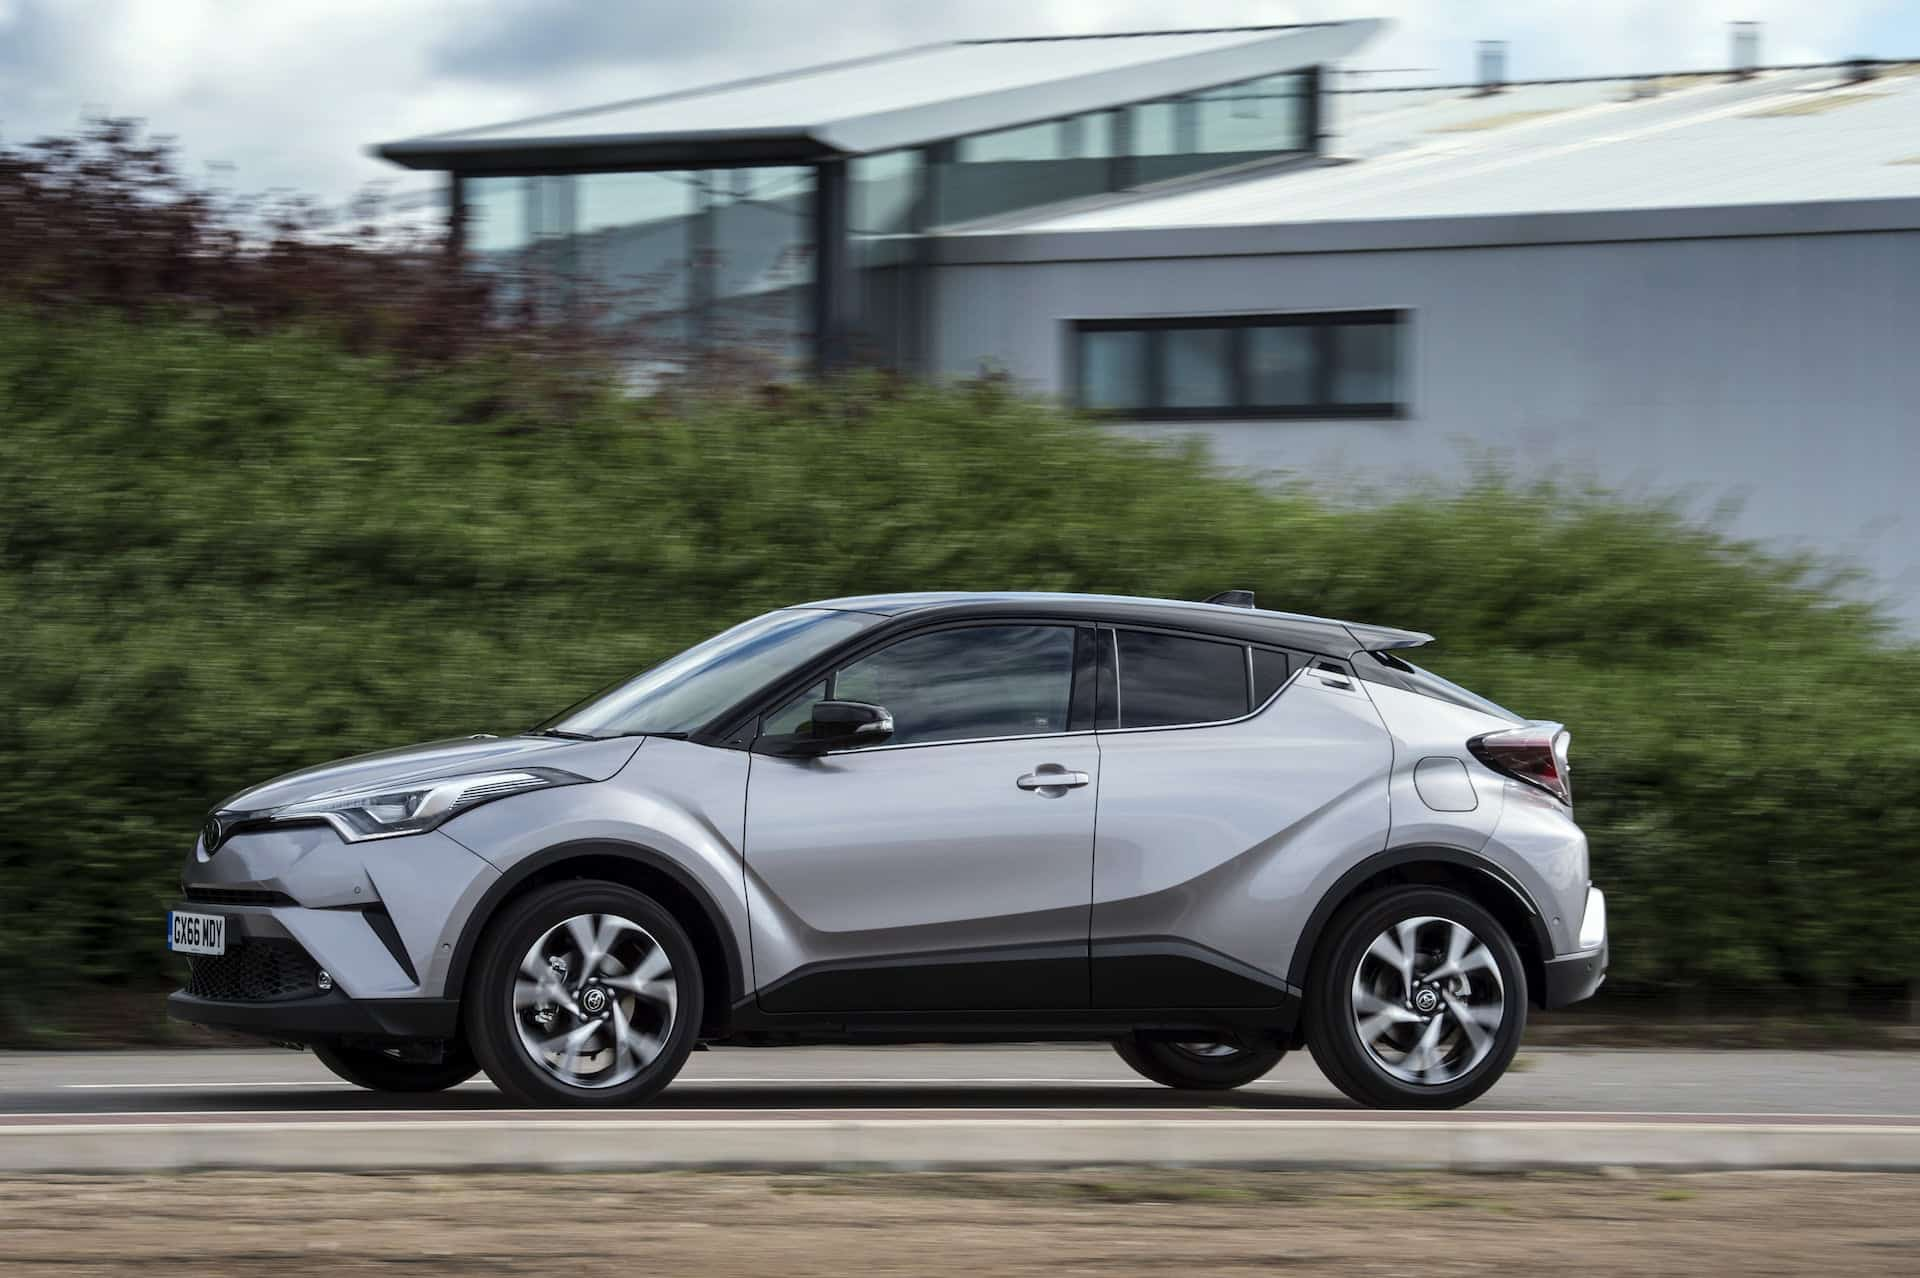 The Toyota C-HR exudes style amongst many more ordinary-looking rivals